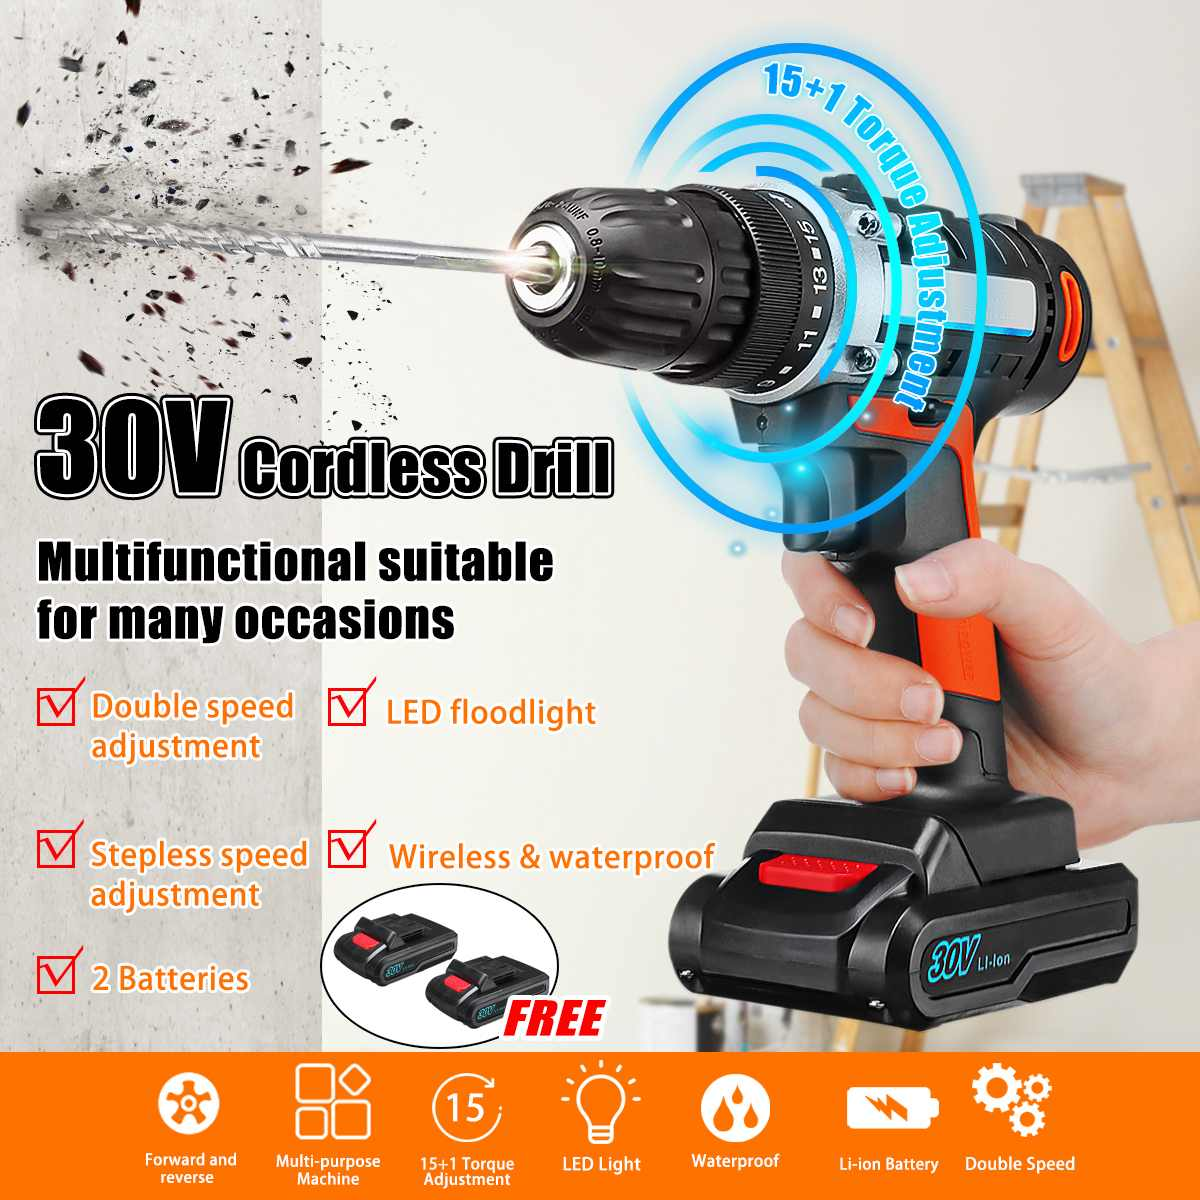 Electric Screwdriver 30V Max Cordless <font><b>Drill</b></font> Rechargeable Power <font><b>Drill</b></font> <font><b>Driver</b></font> Wireless Electric Screwdriver with 2 Li-ion <font><b>Batterie</b></font> image